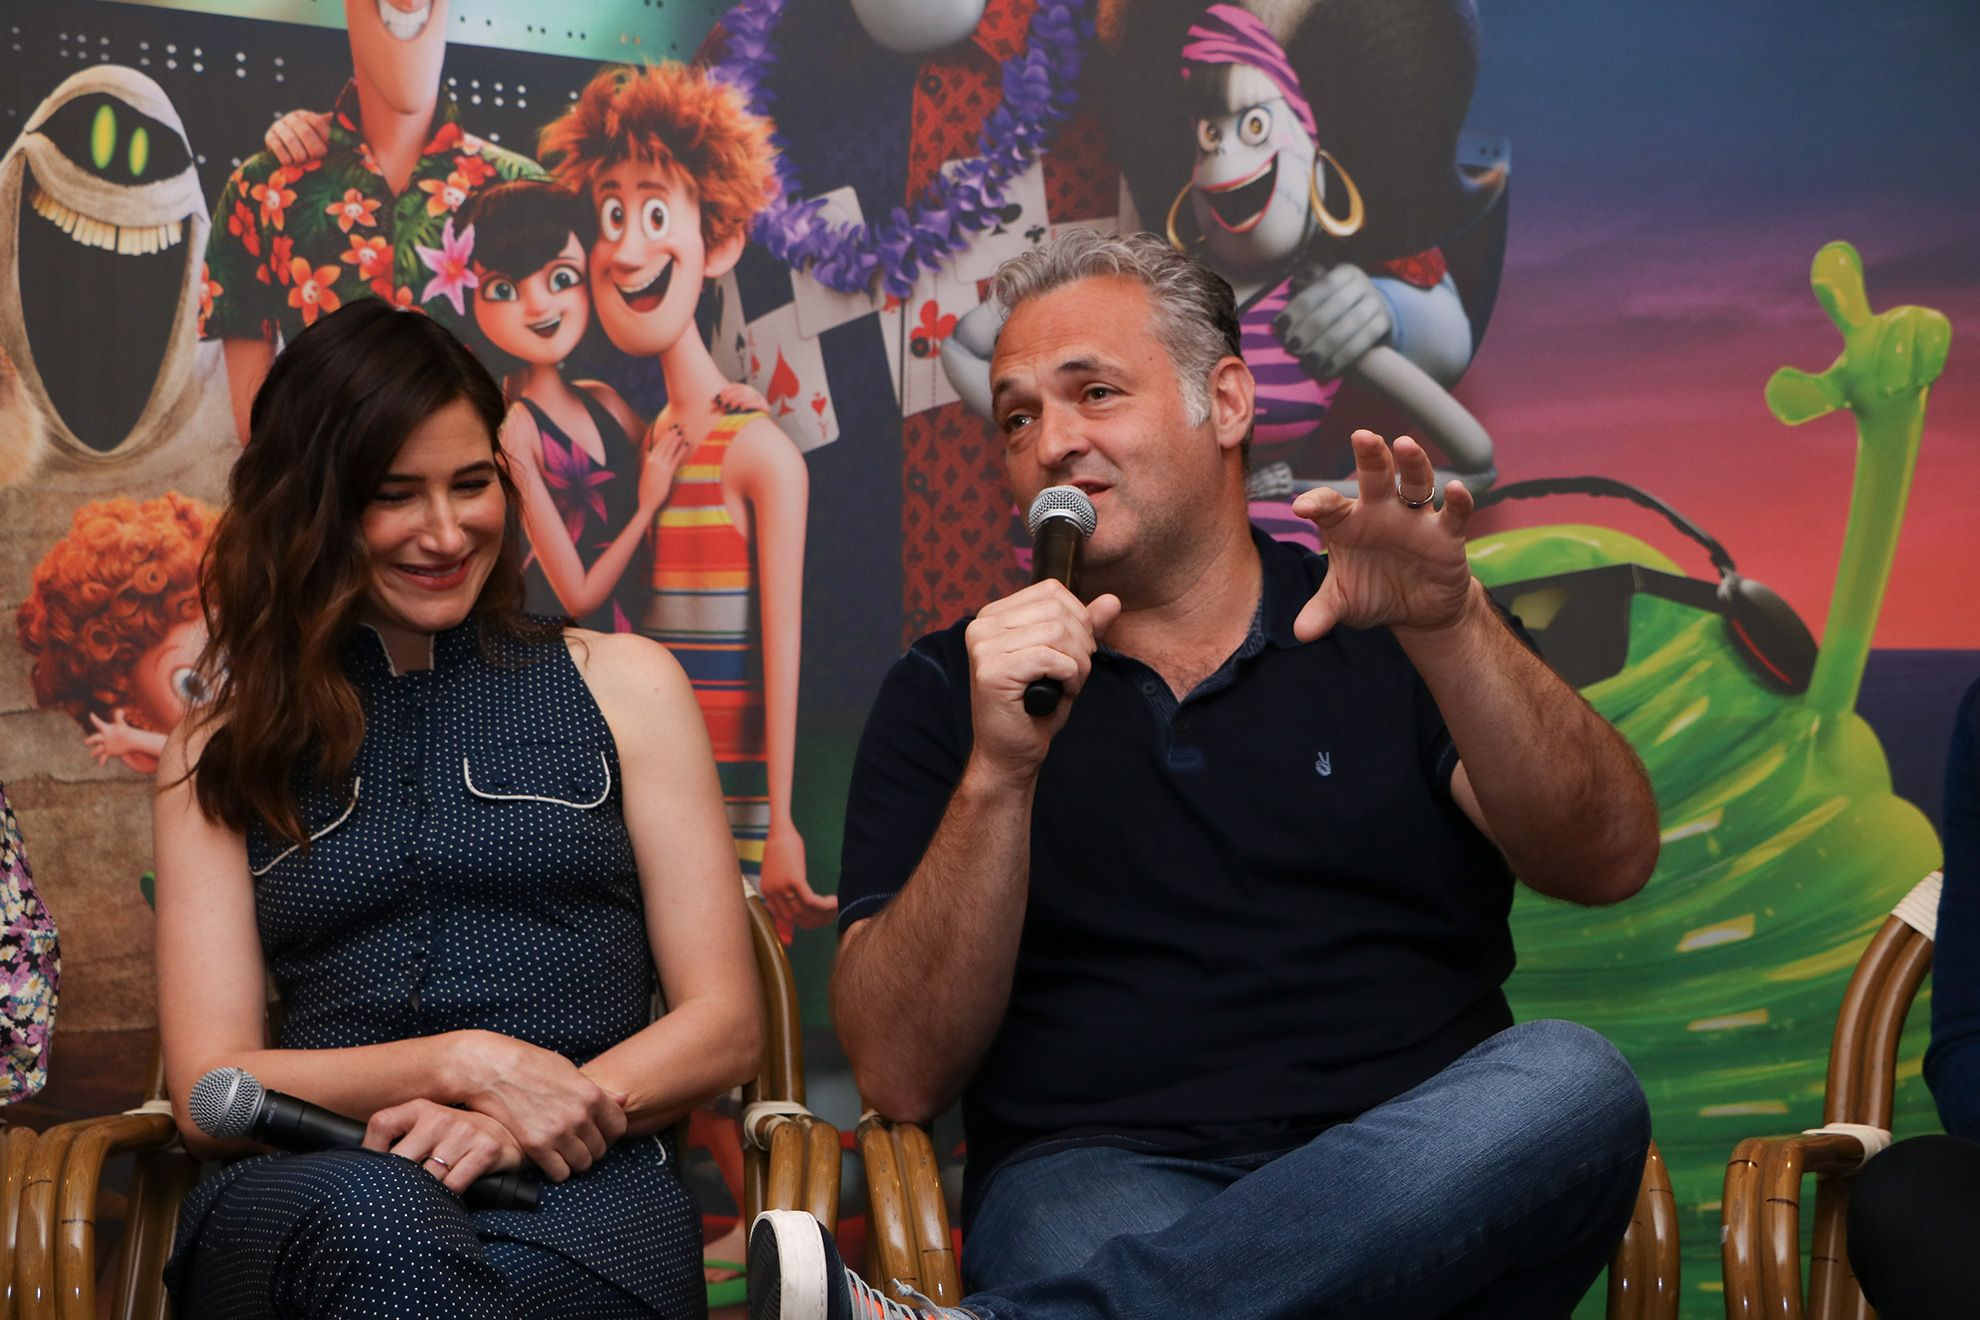 Hotel Transylvania 3 Blu Ray Arrives Just In Time For The